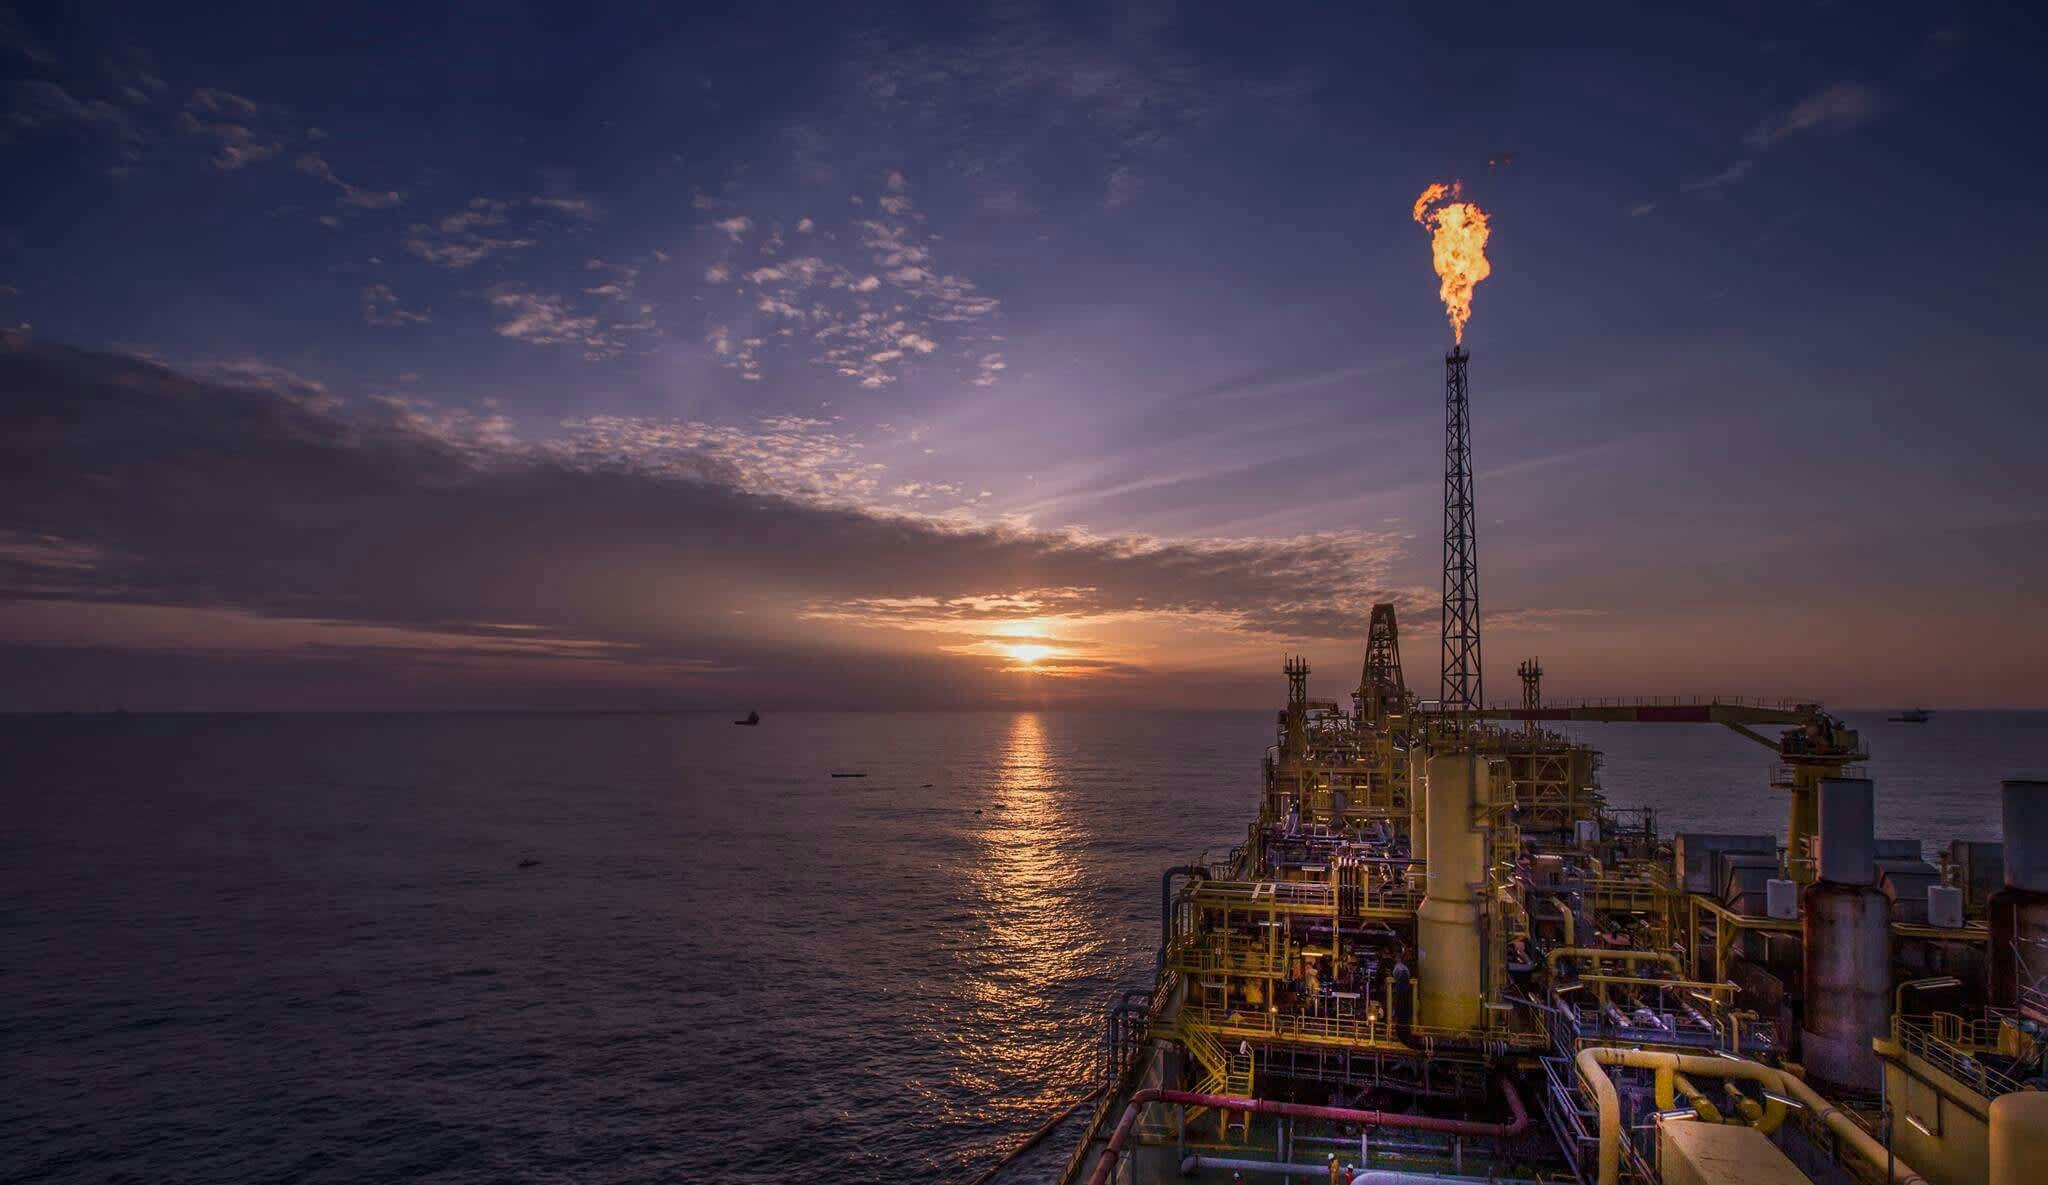 Here's why the Strait of Hormuz is the world's most important oil chokepoint